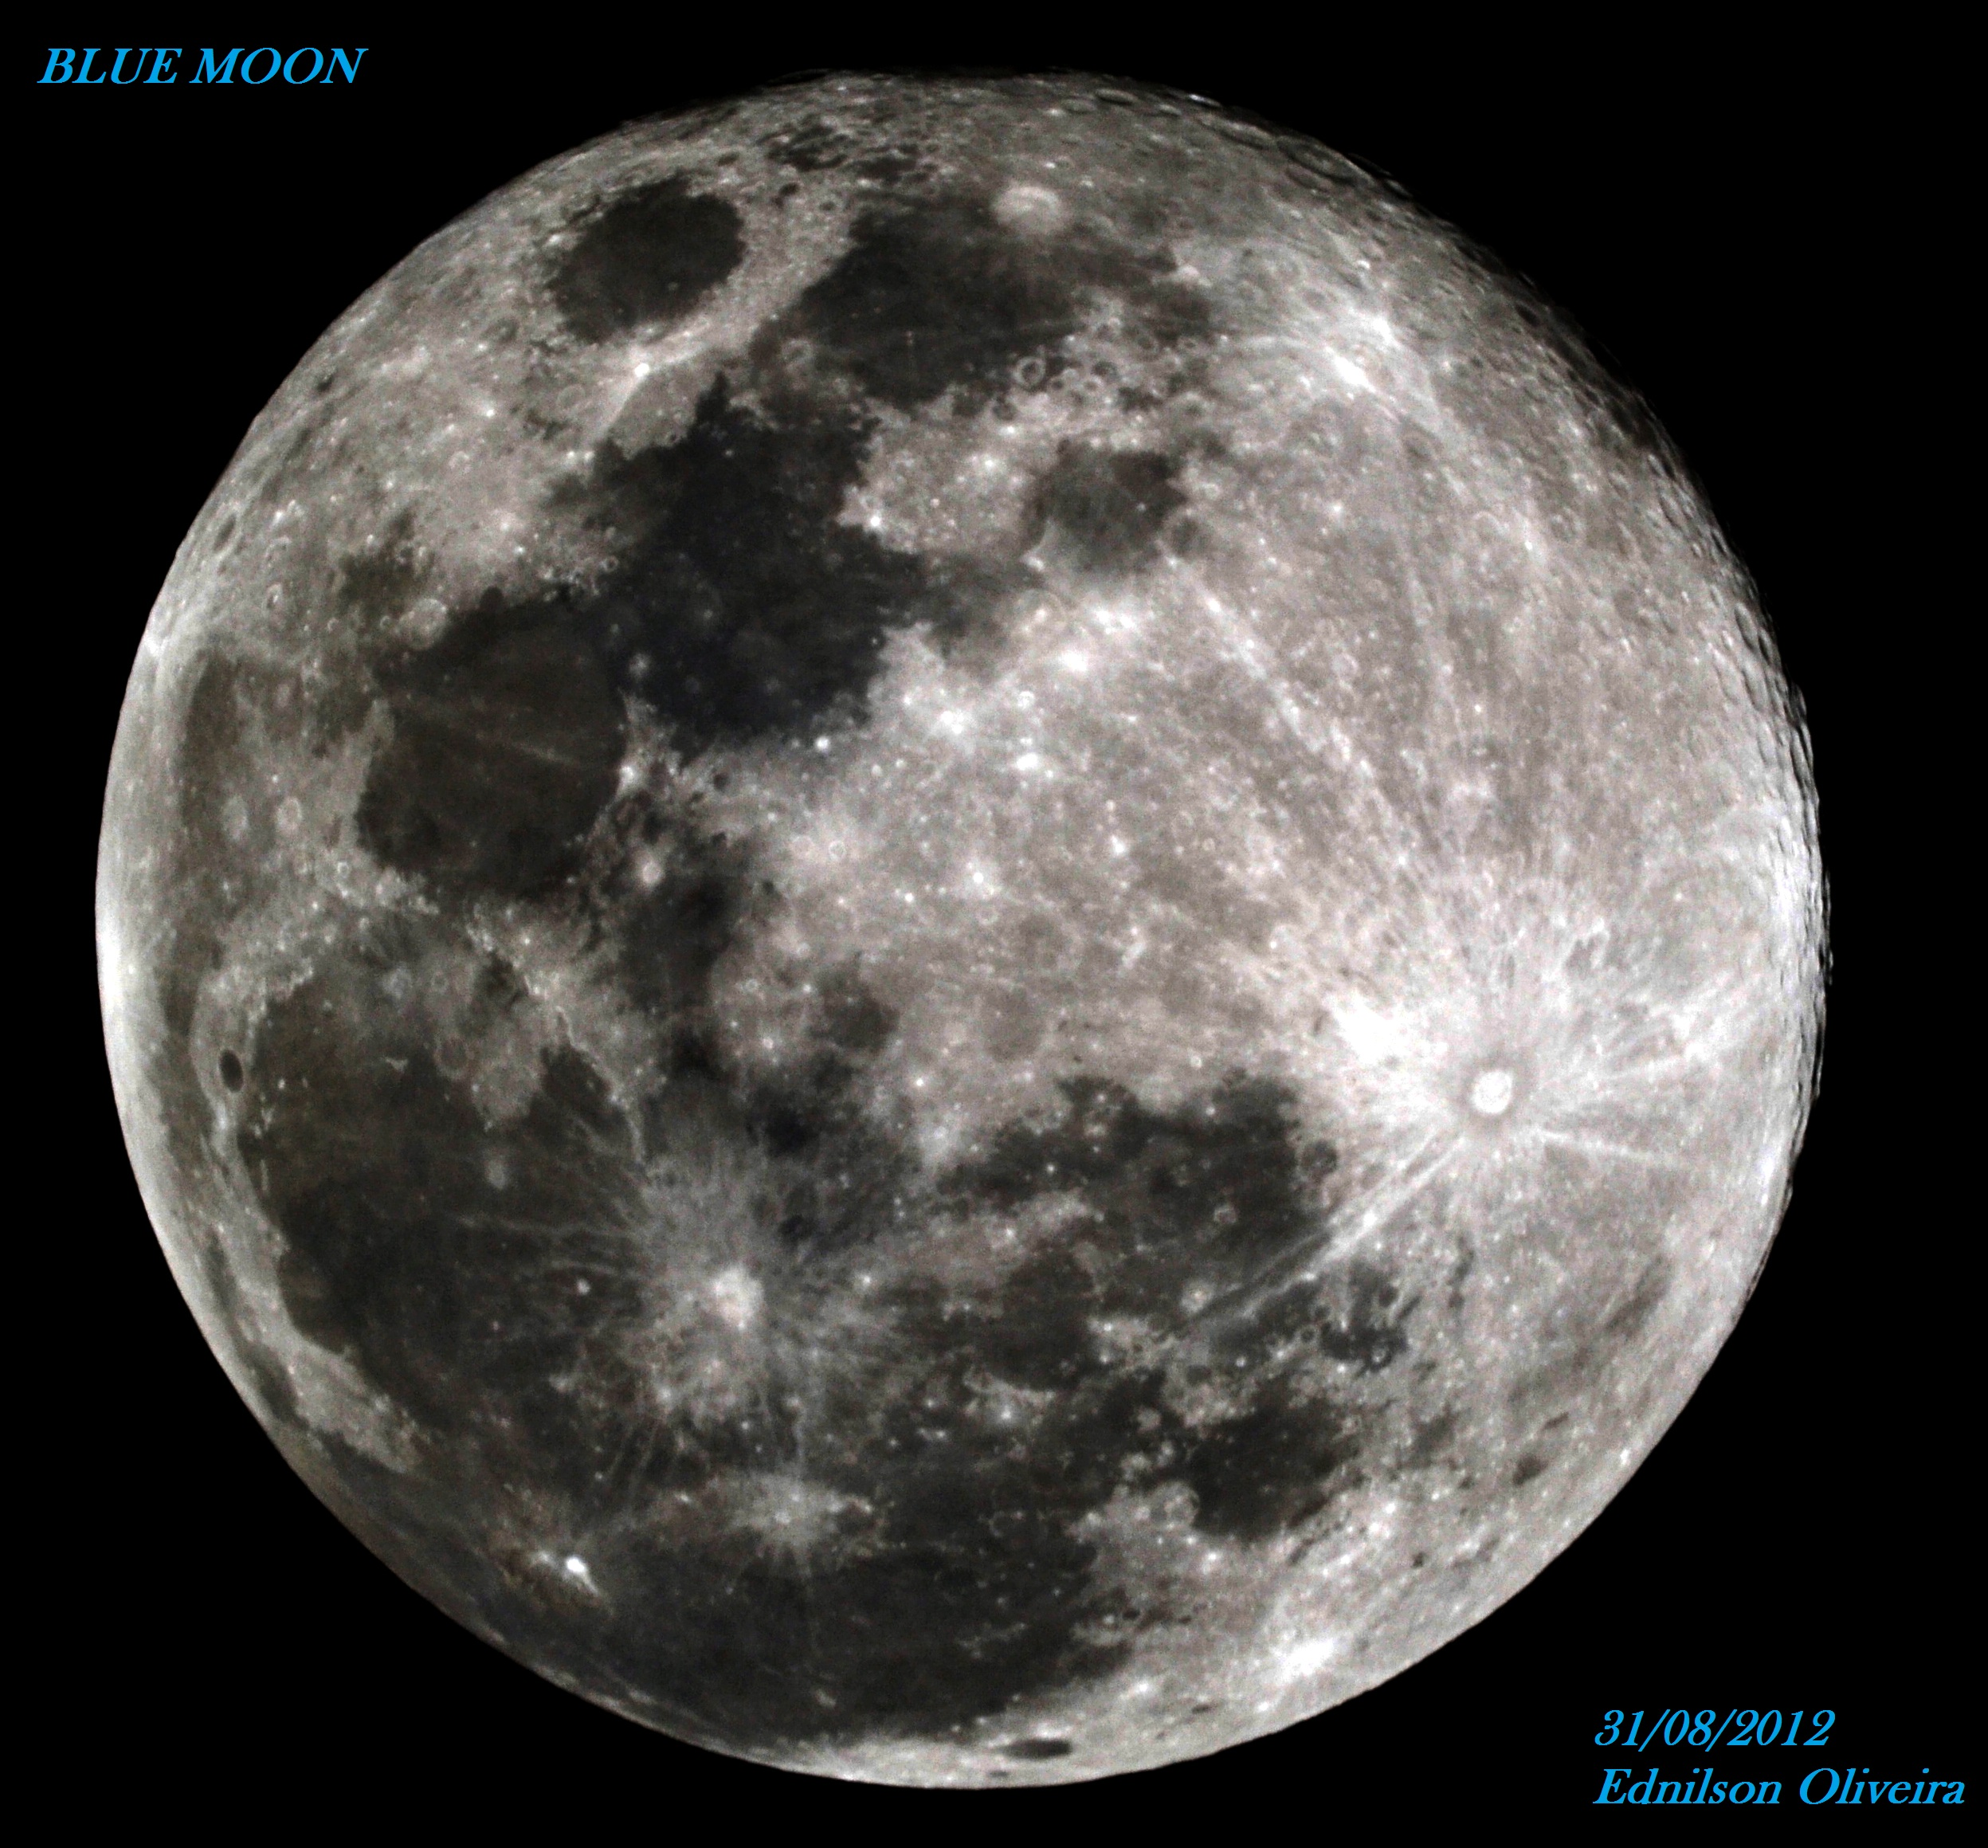 The Moon on 31/08/2012 – 23:15 TL – from São Paulo, Brazil ...